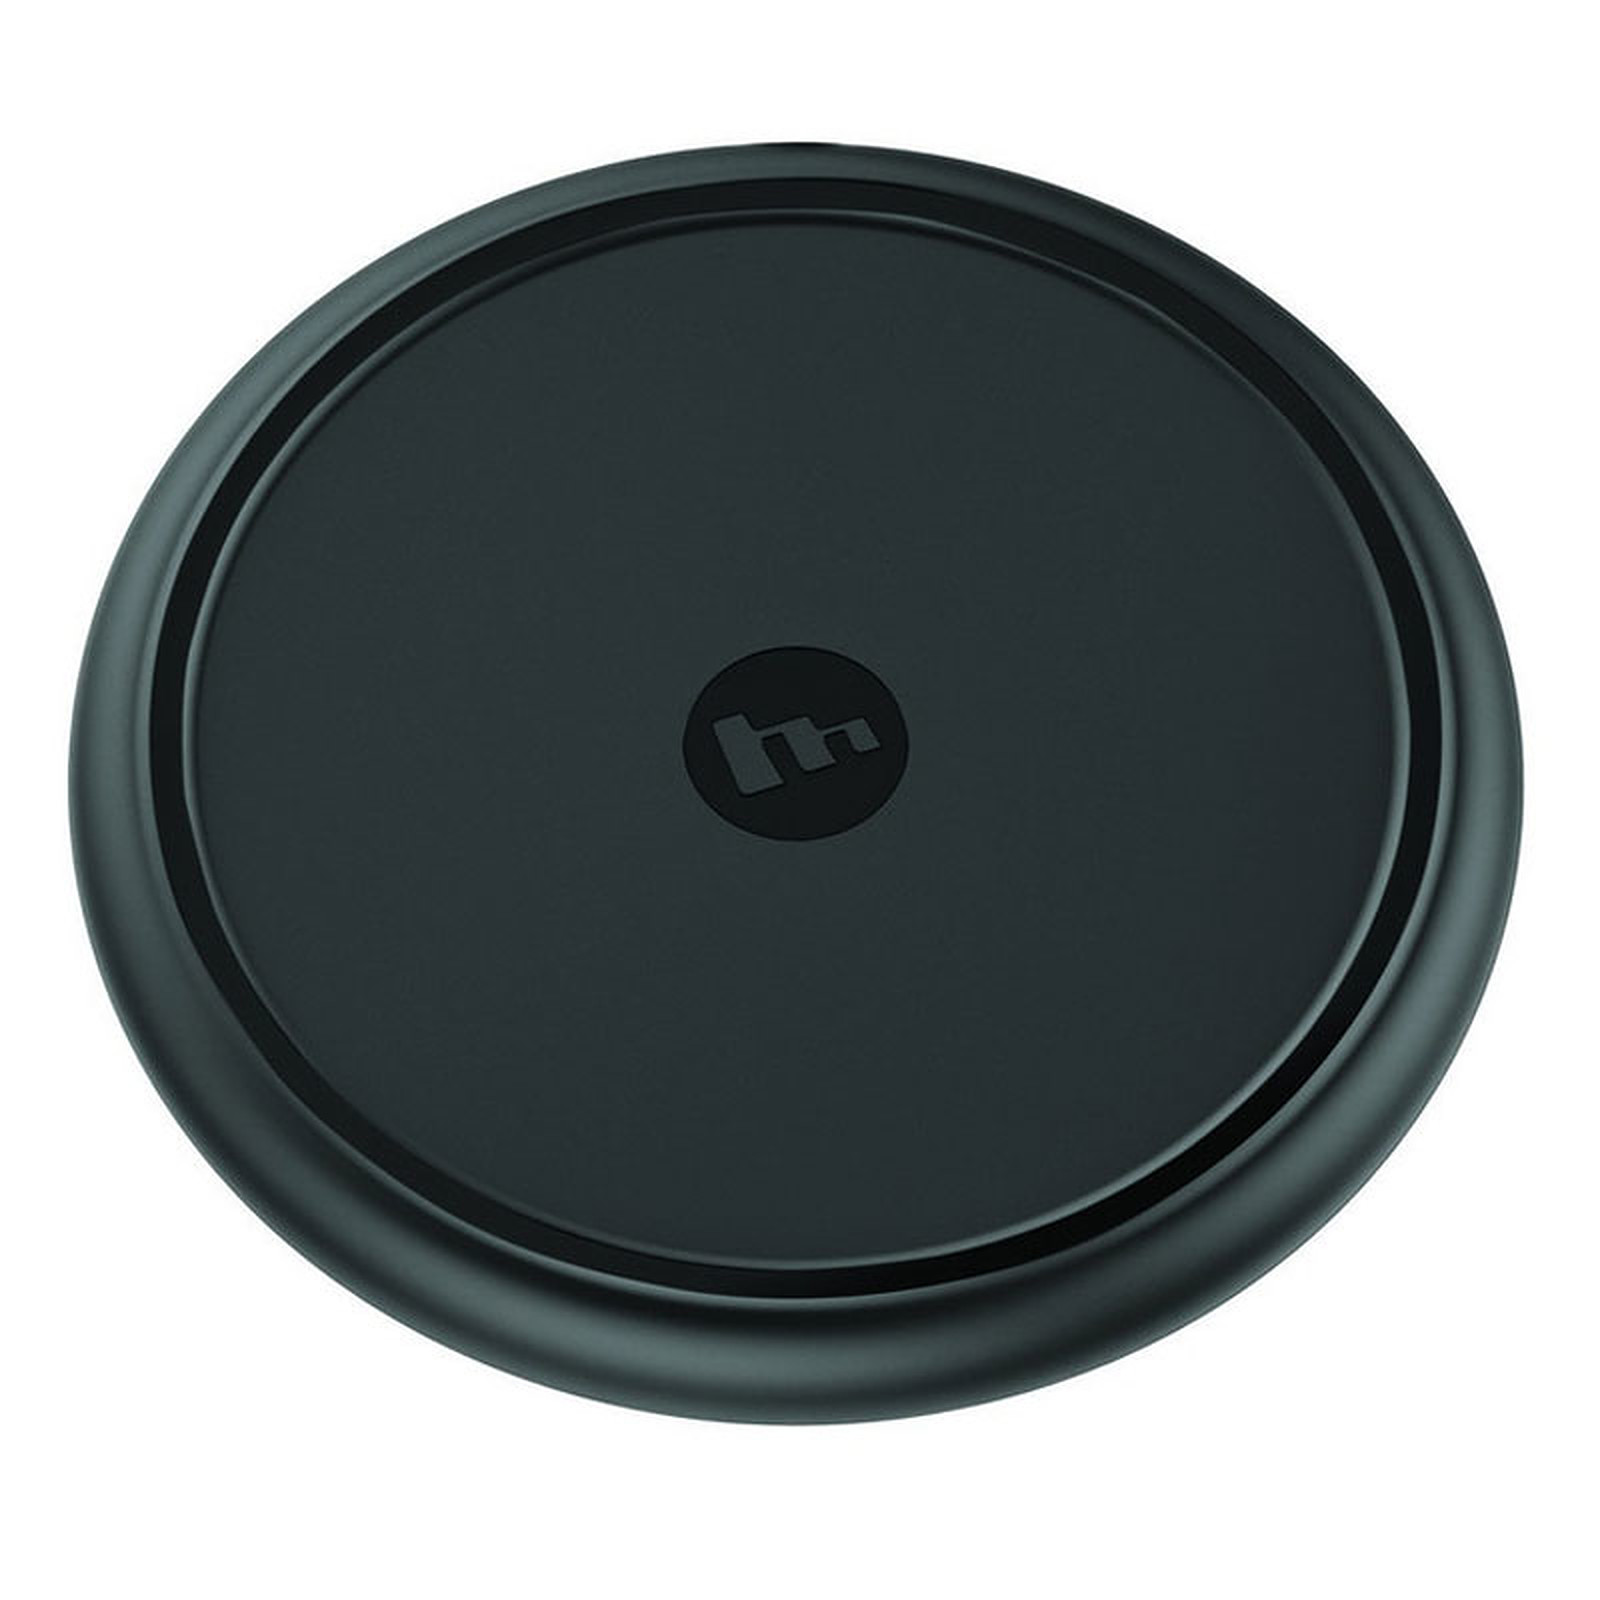 mophie wireless charging pad chargeur t l phone mophie sur. Black Bedroom Furniture Sets. Home Design Ideas